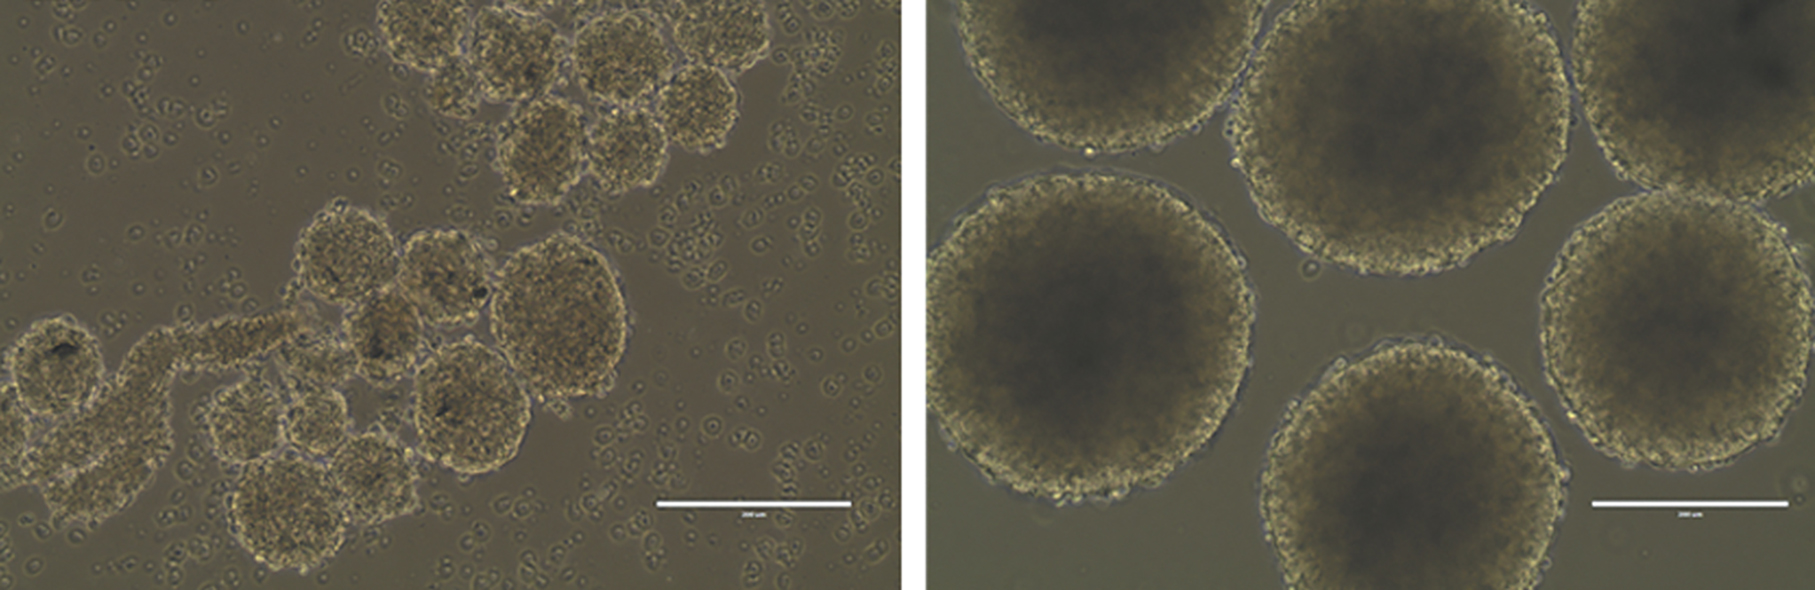 Cell death: Clusters of brain cells grown in culture that have been infected with the Zika virus (left) are much smaller than uninfected spheres (right).